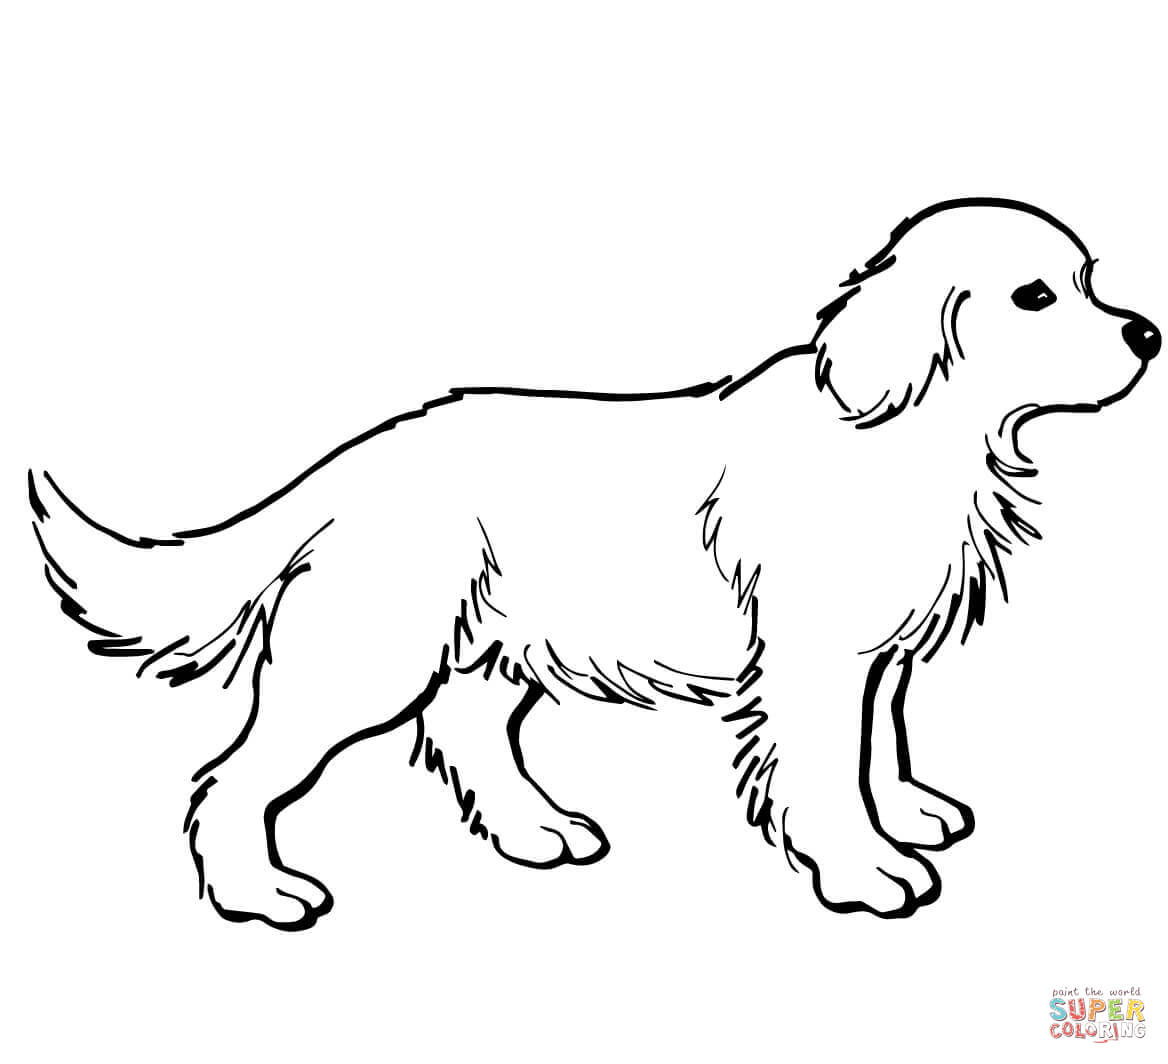 Free coloring pages golden retriever - Golden Retriever Puppy Coloring Page Free Printable Coloring Pages Coloring